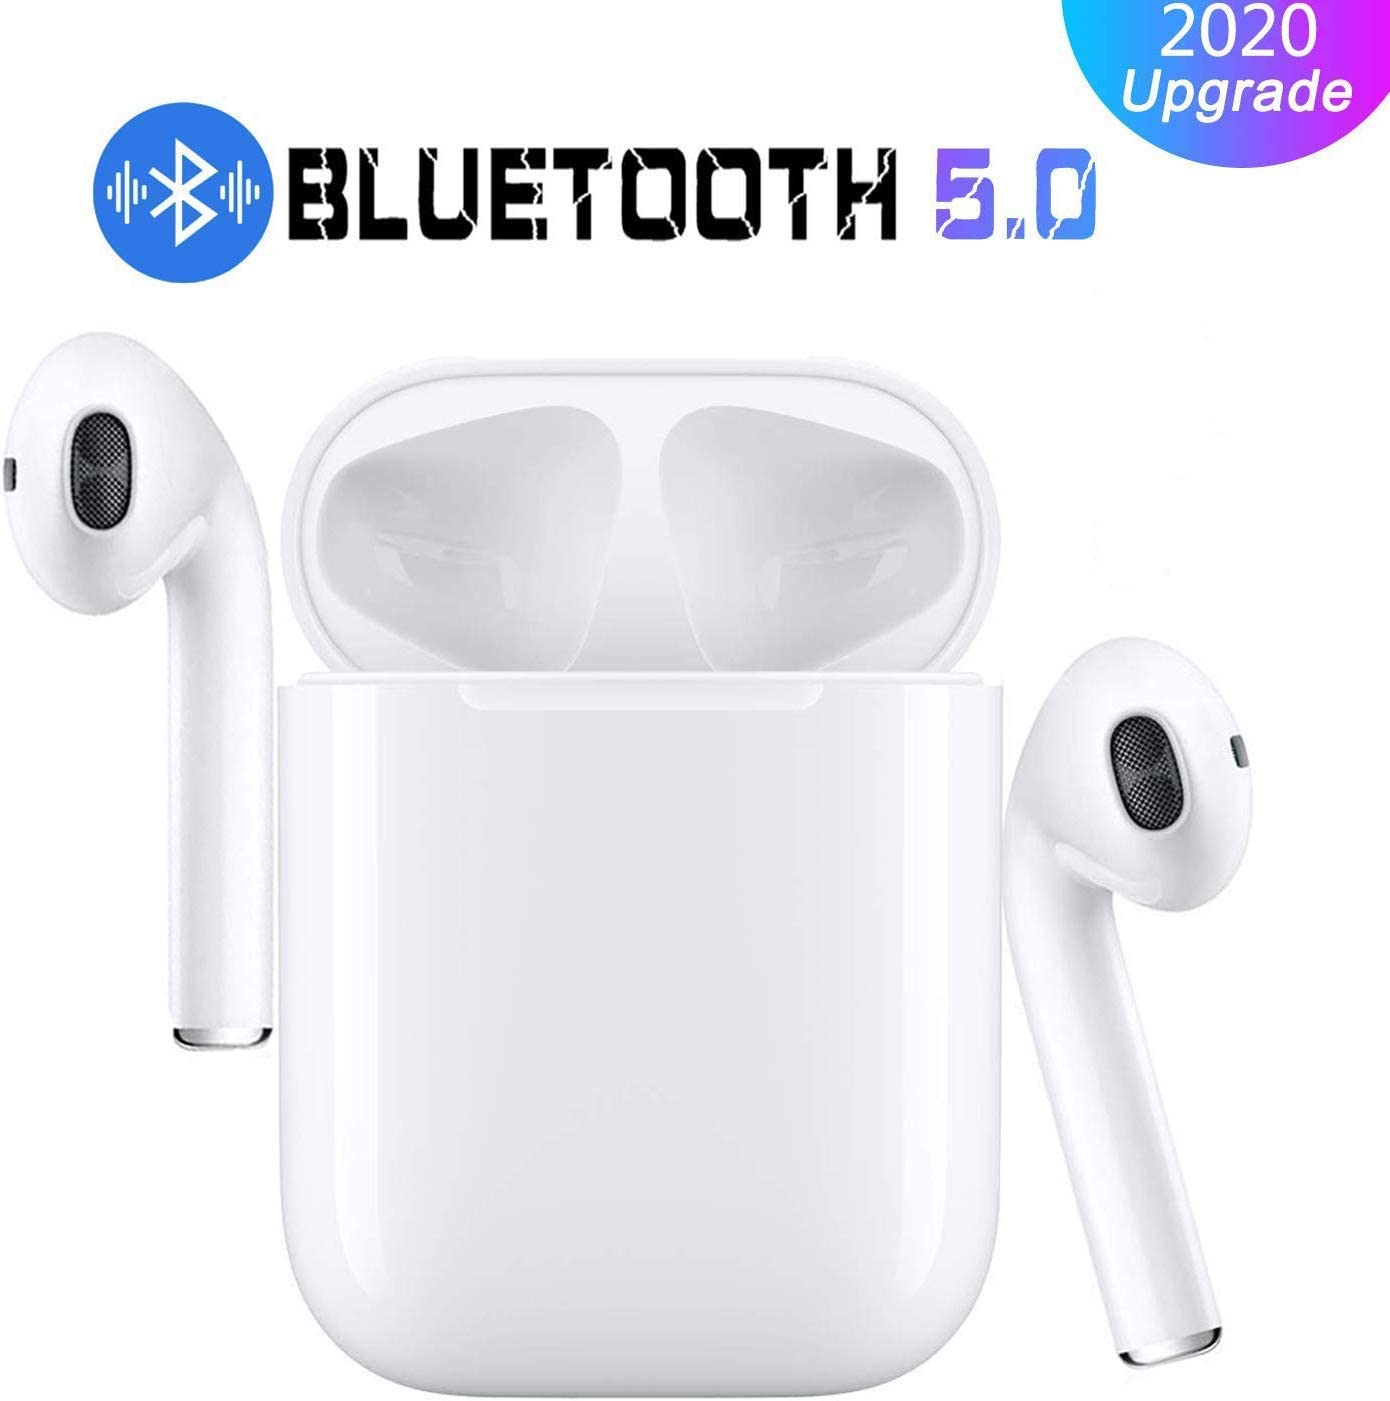 Bluetooth Wireless Earbuds Noise Canceling Sports Headphones with Charging Case IPX5 Waterproof Stereo Earphones in-Ear Built-in HD Mic Headsets for iPhone Android iPhone